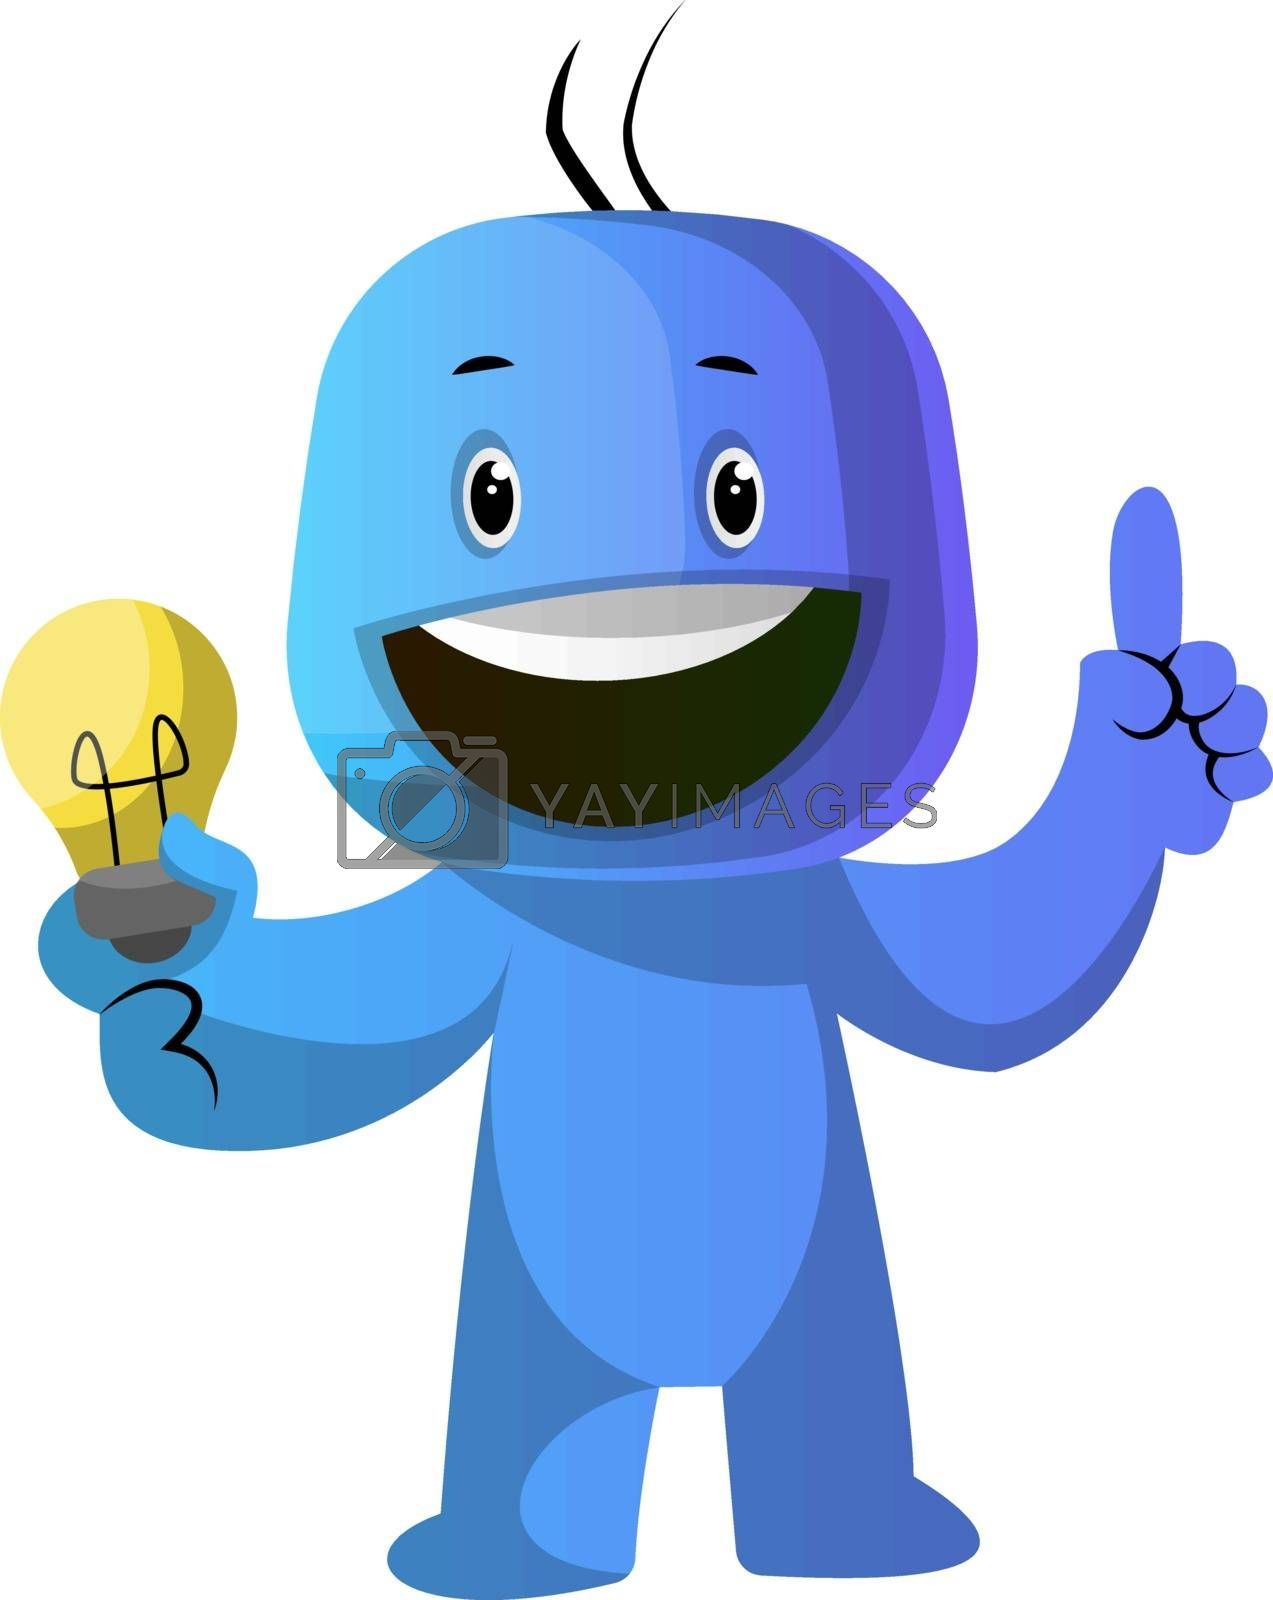 Royalty free image of Blue cartoon caracter with lightbulb illustration vector on whit by Morphart